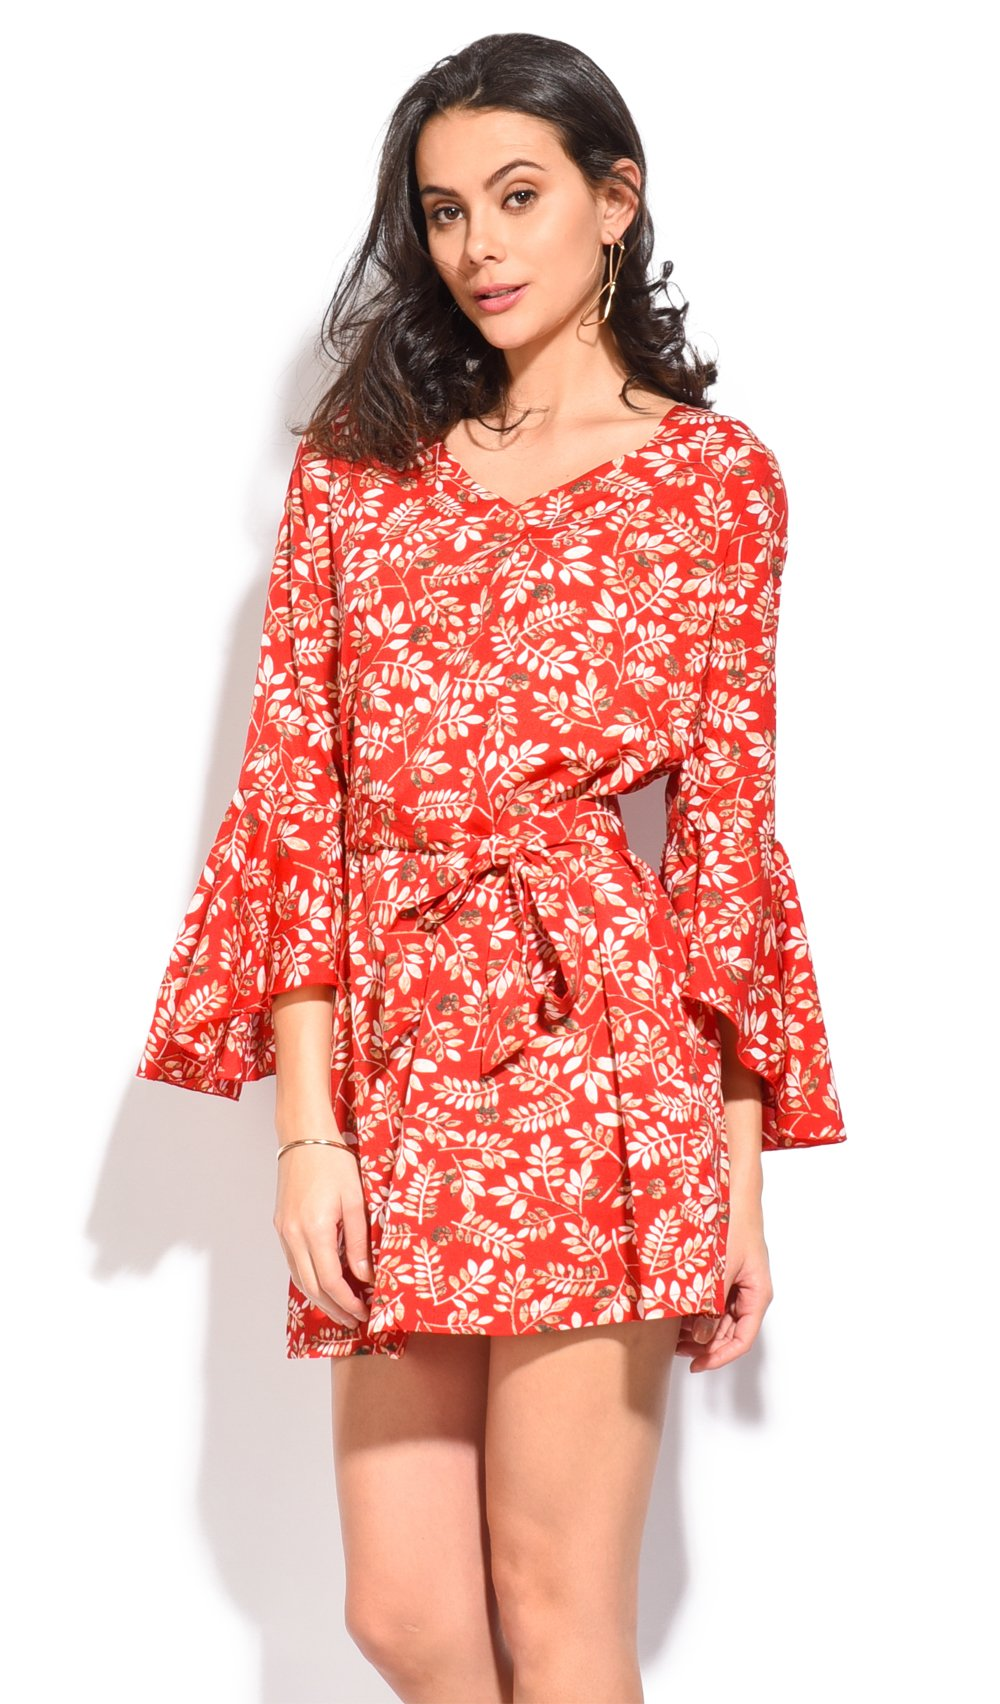 ROUND COLLAR SHORT DRESS WITH FLORAL PRINT AND BELT